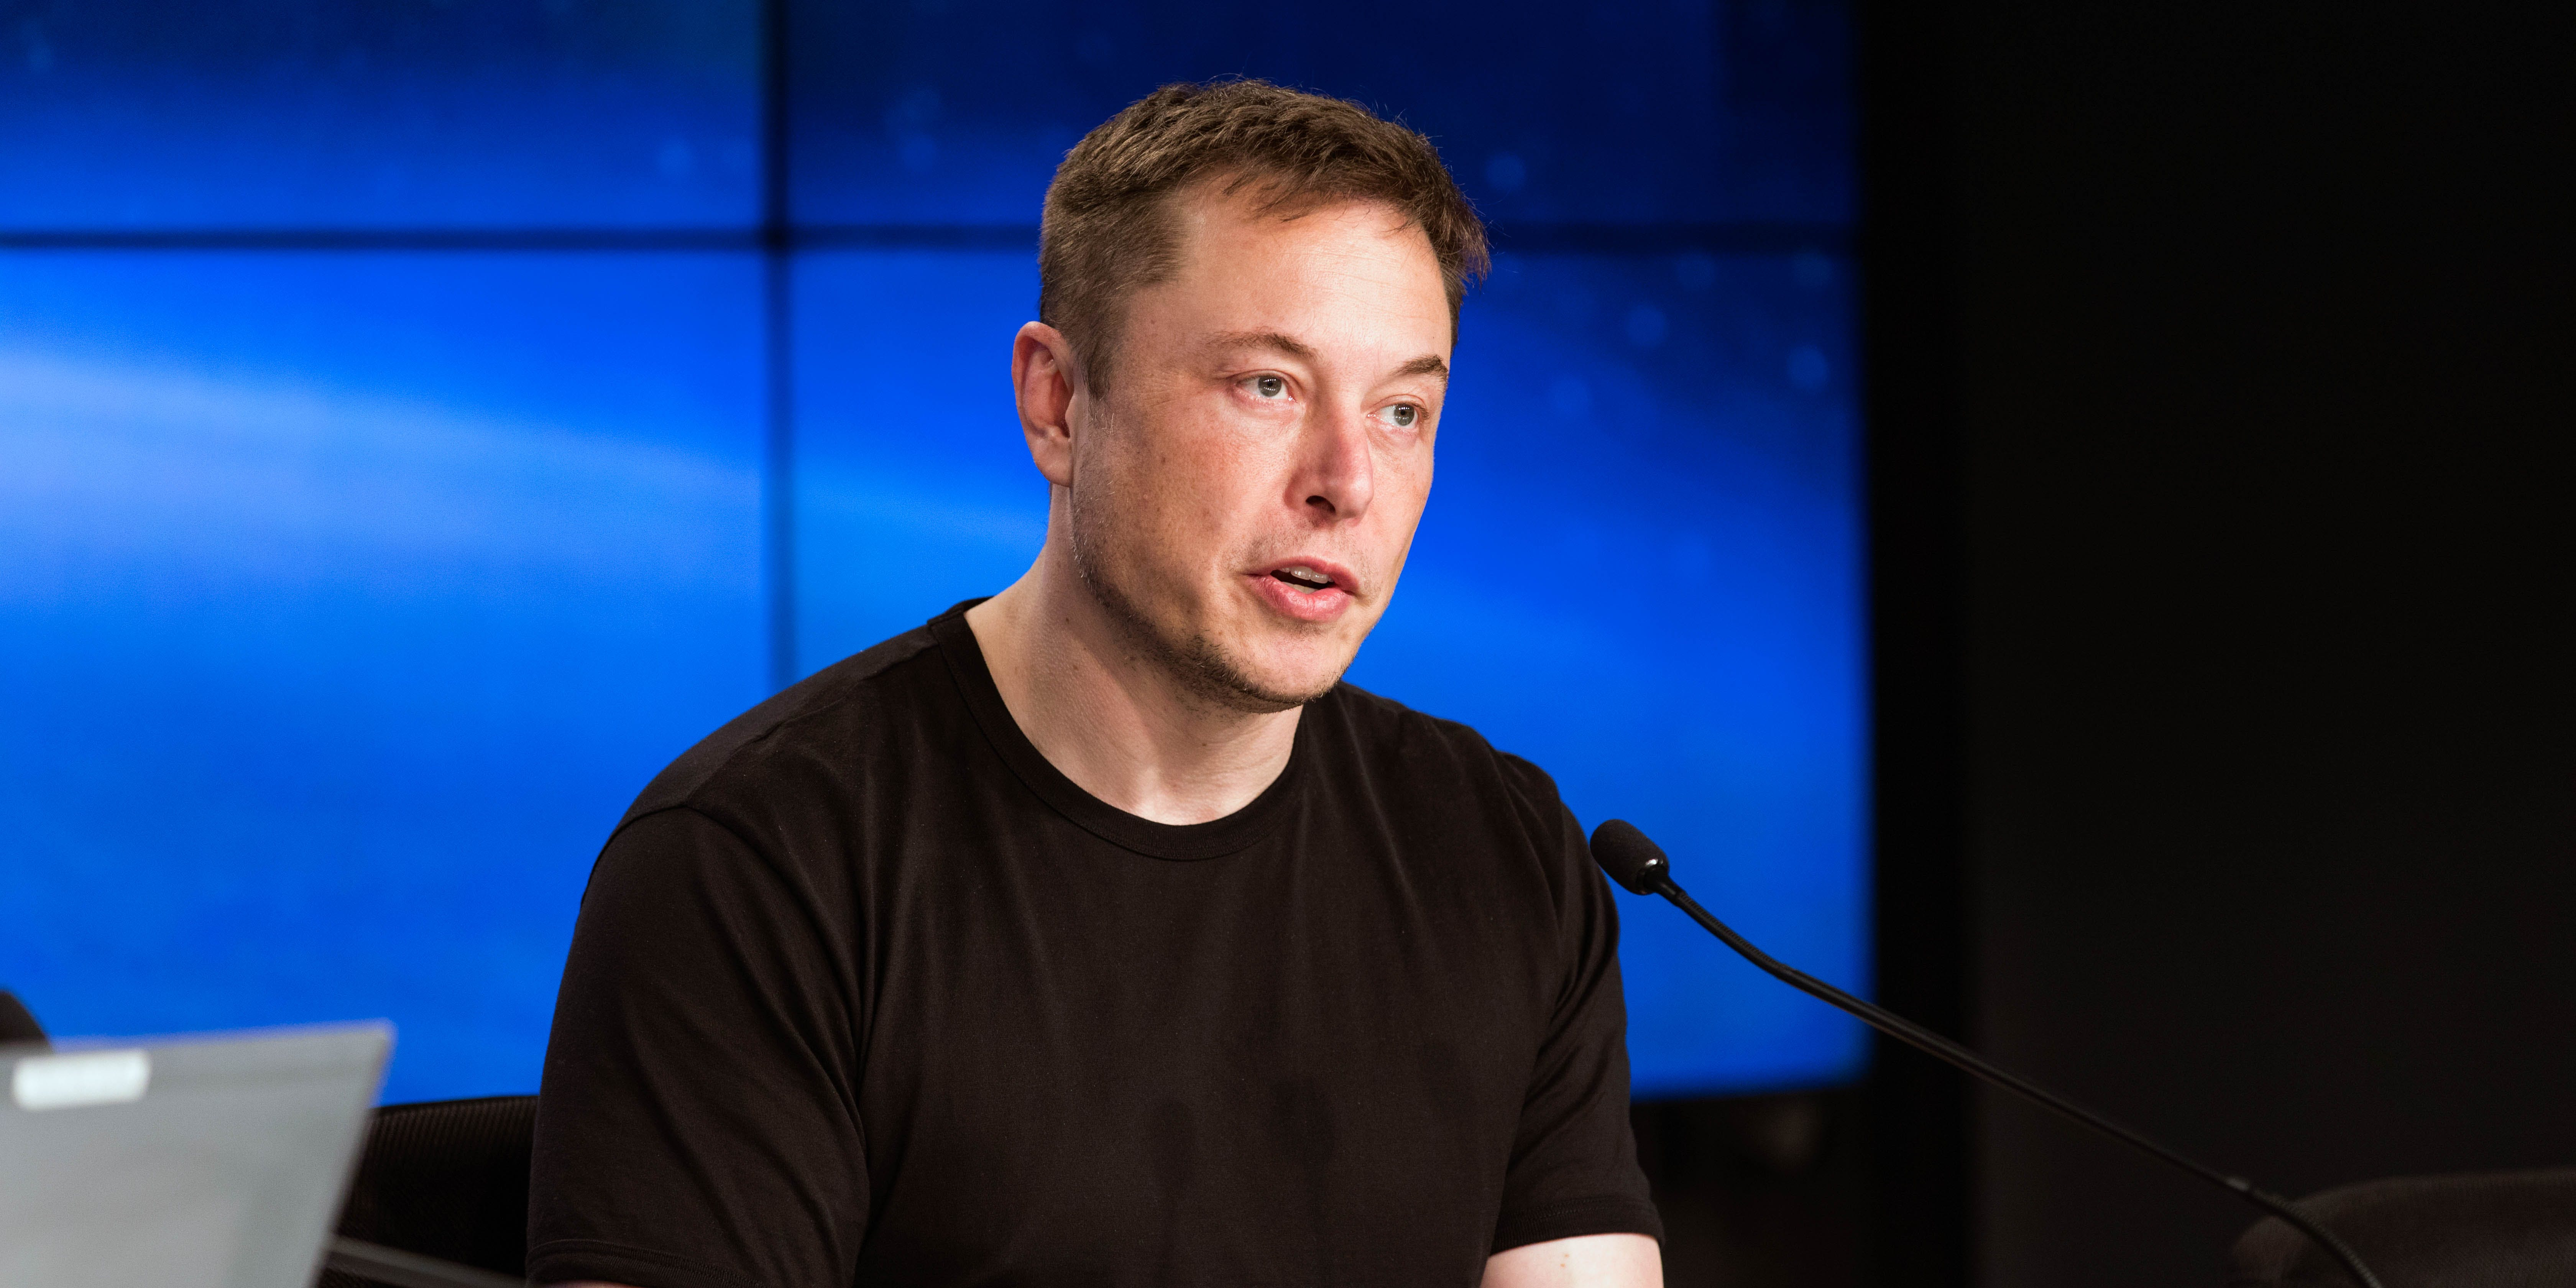 Elon Musk Sued Over 420 Tweet Which Caused Tesla Stock's to Tank